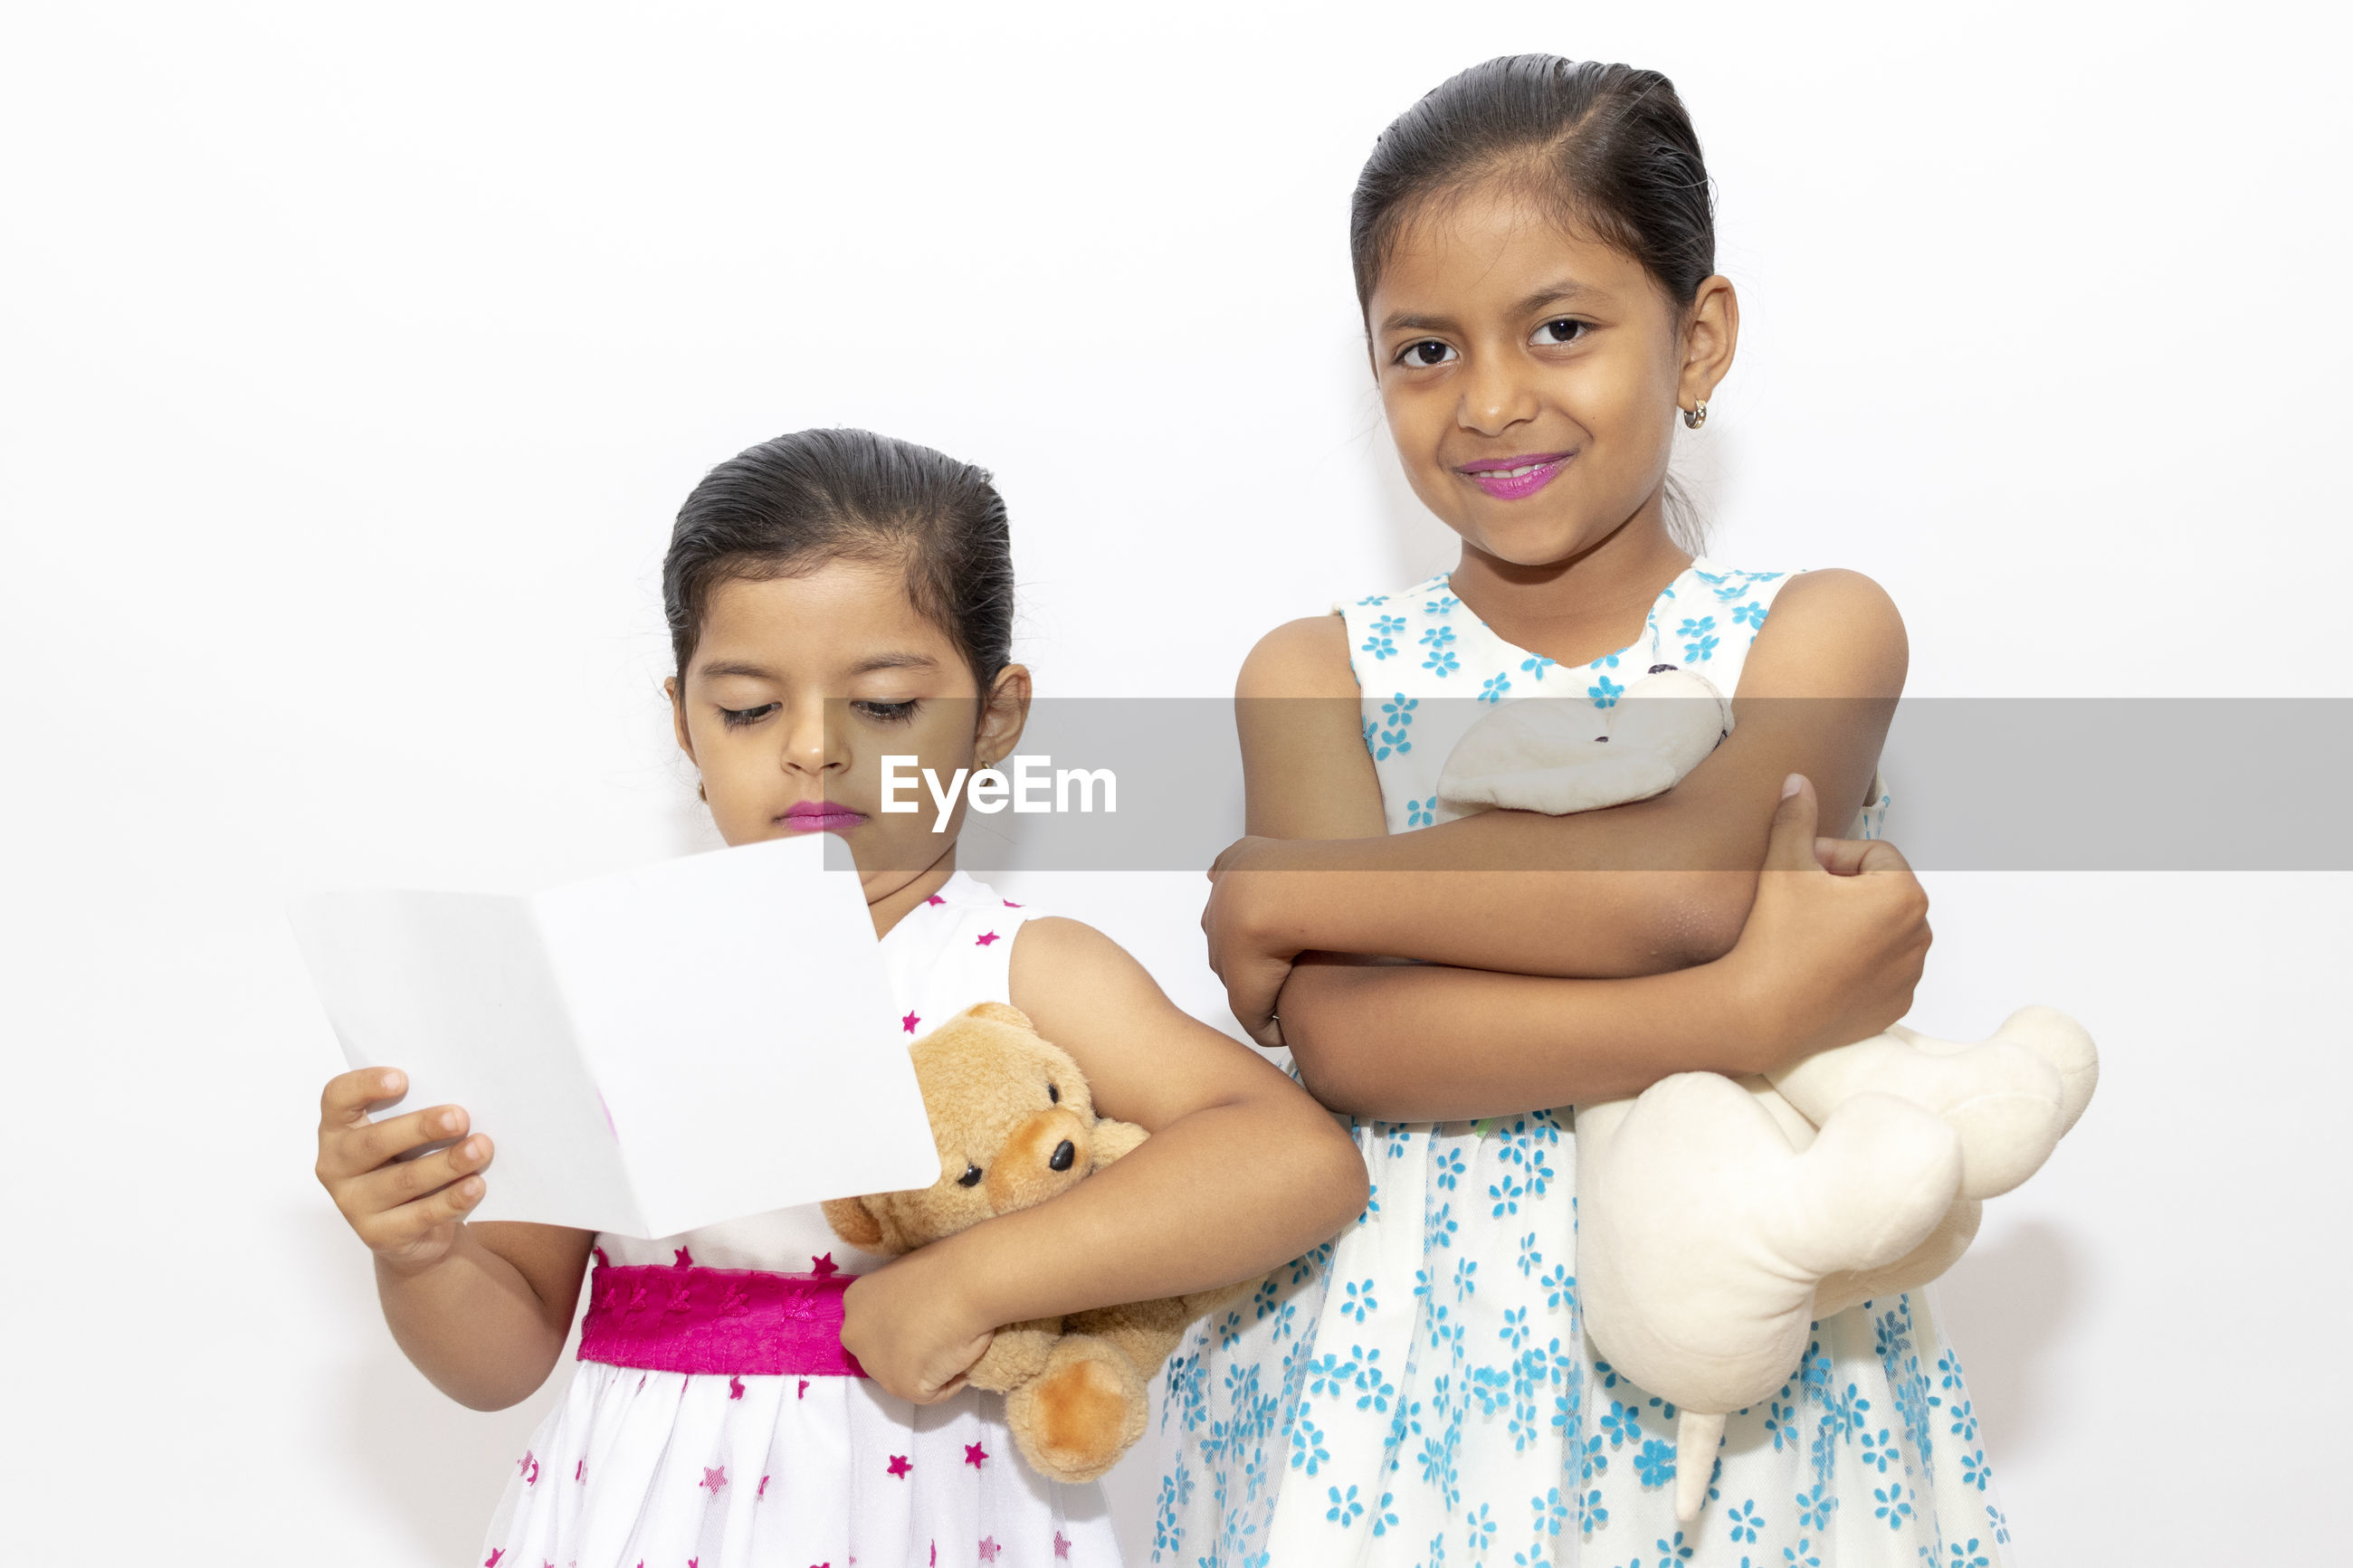 Front view of smiling girls with toy against white background